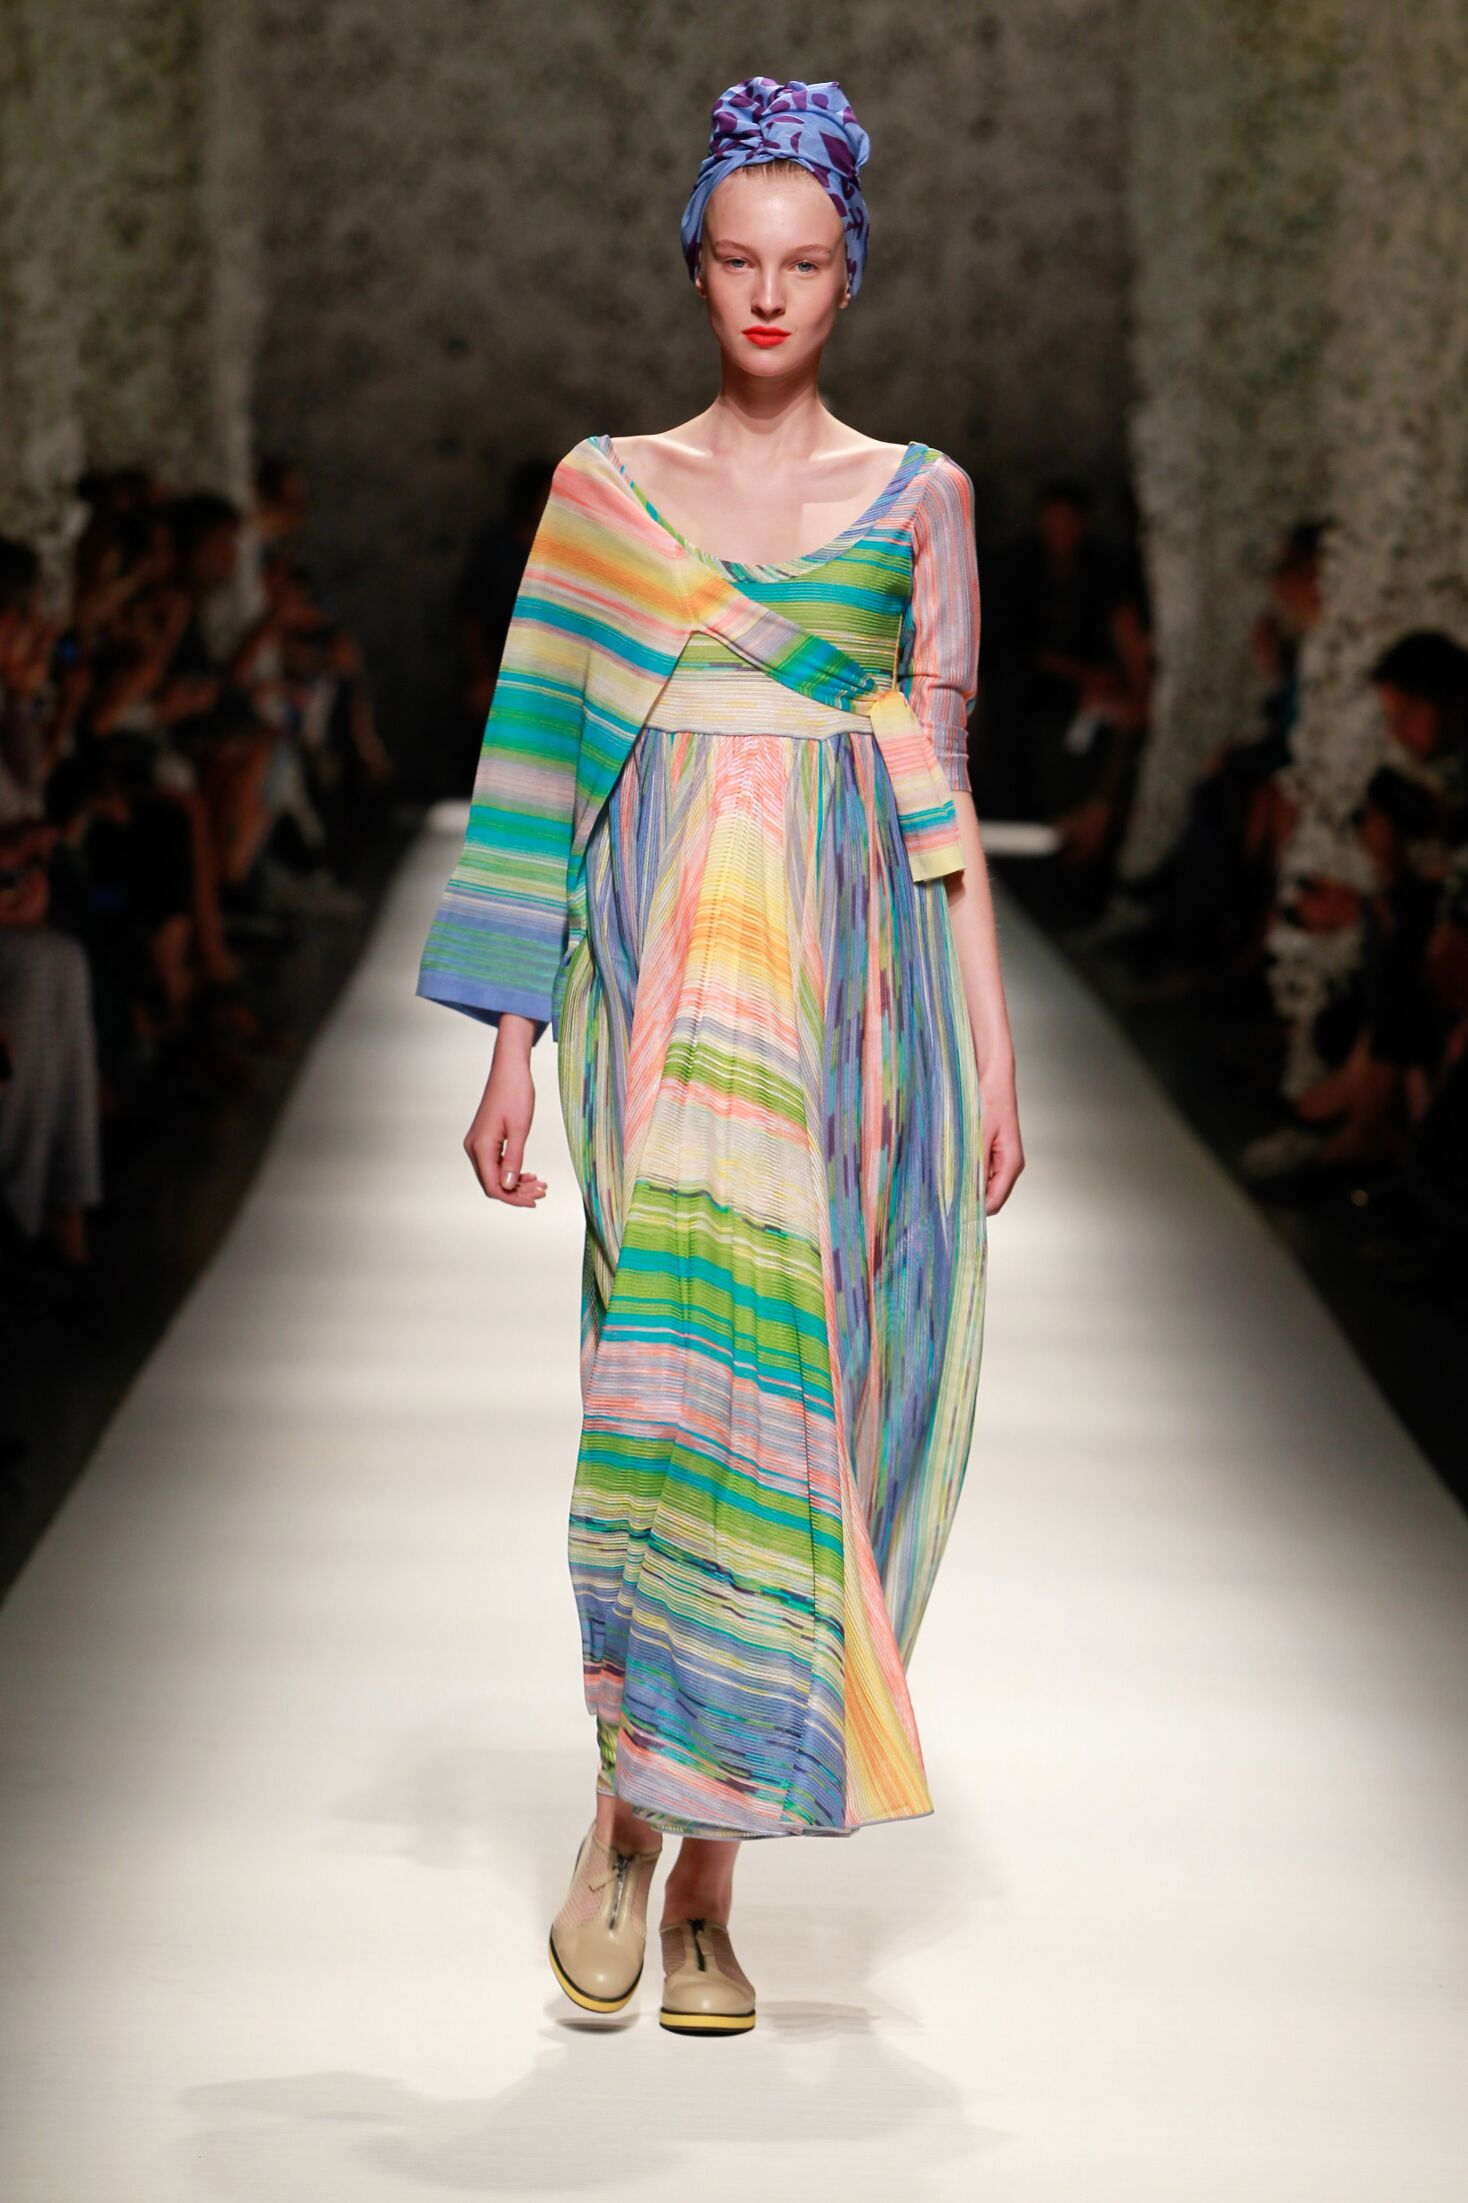 Missoni Summer 2015 Catwalk